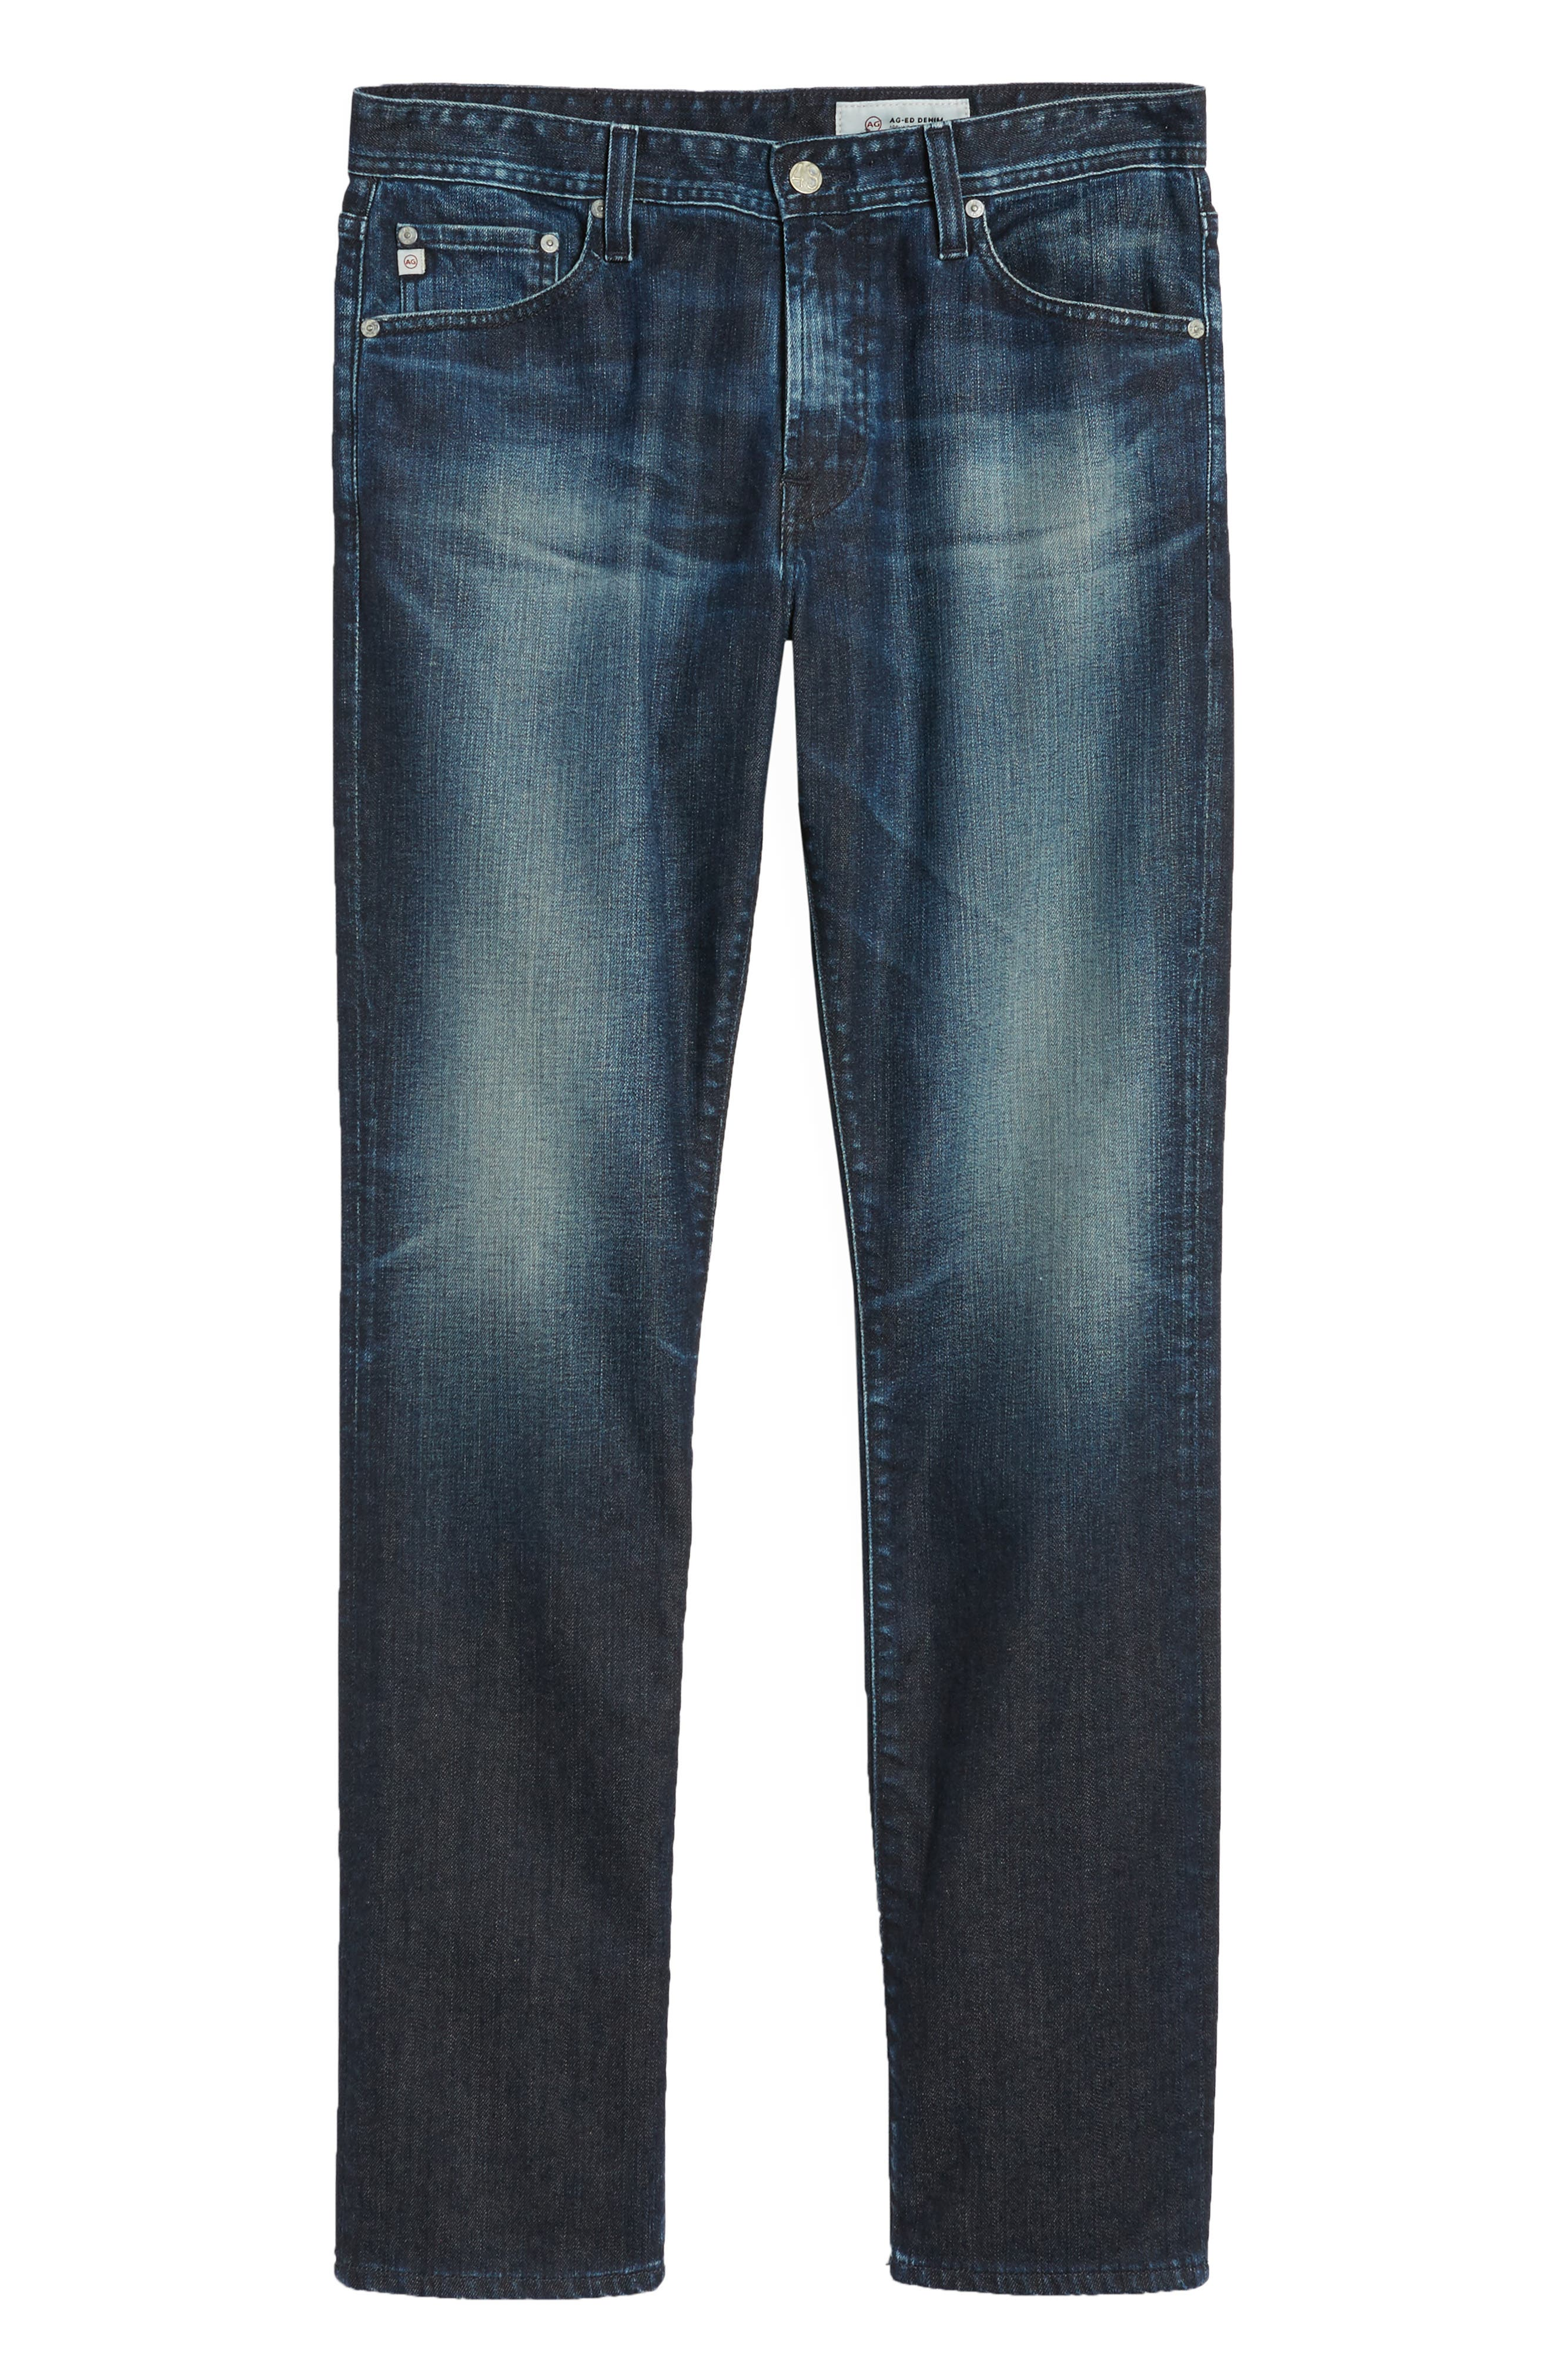 Everett Slim Straight Fit Jeans,                             Alternate thumbnail 6, color,                             3 YEARS TRENTWOOD